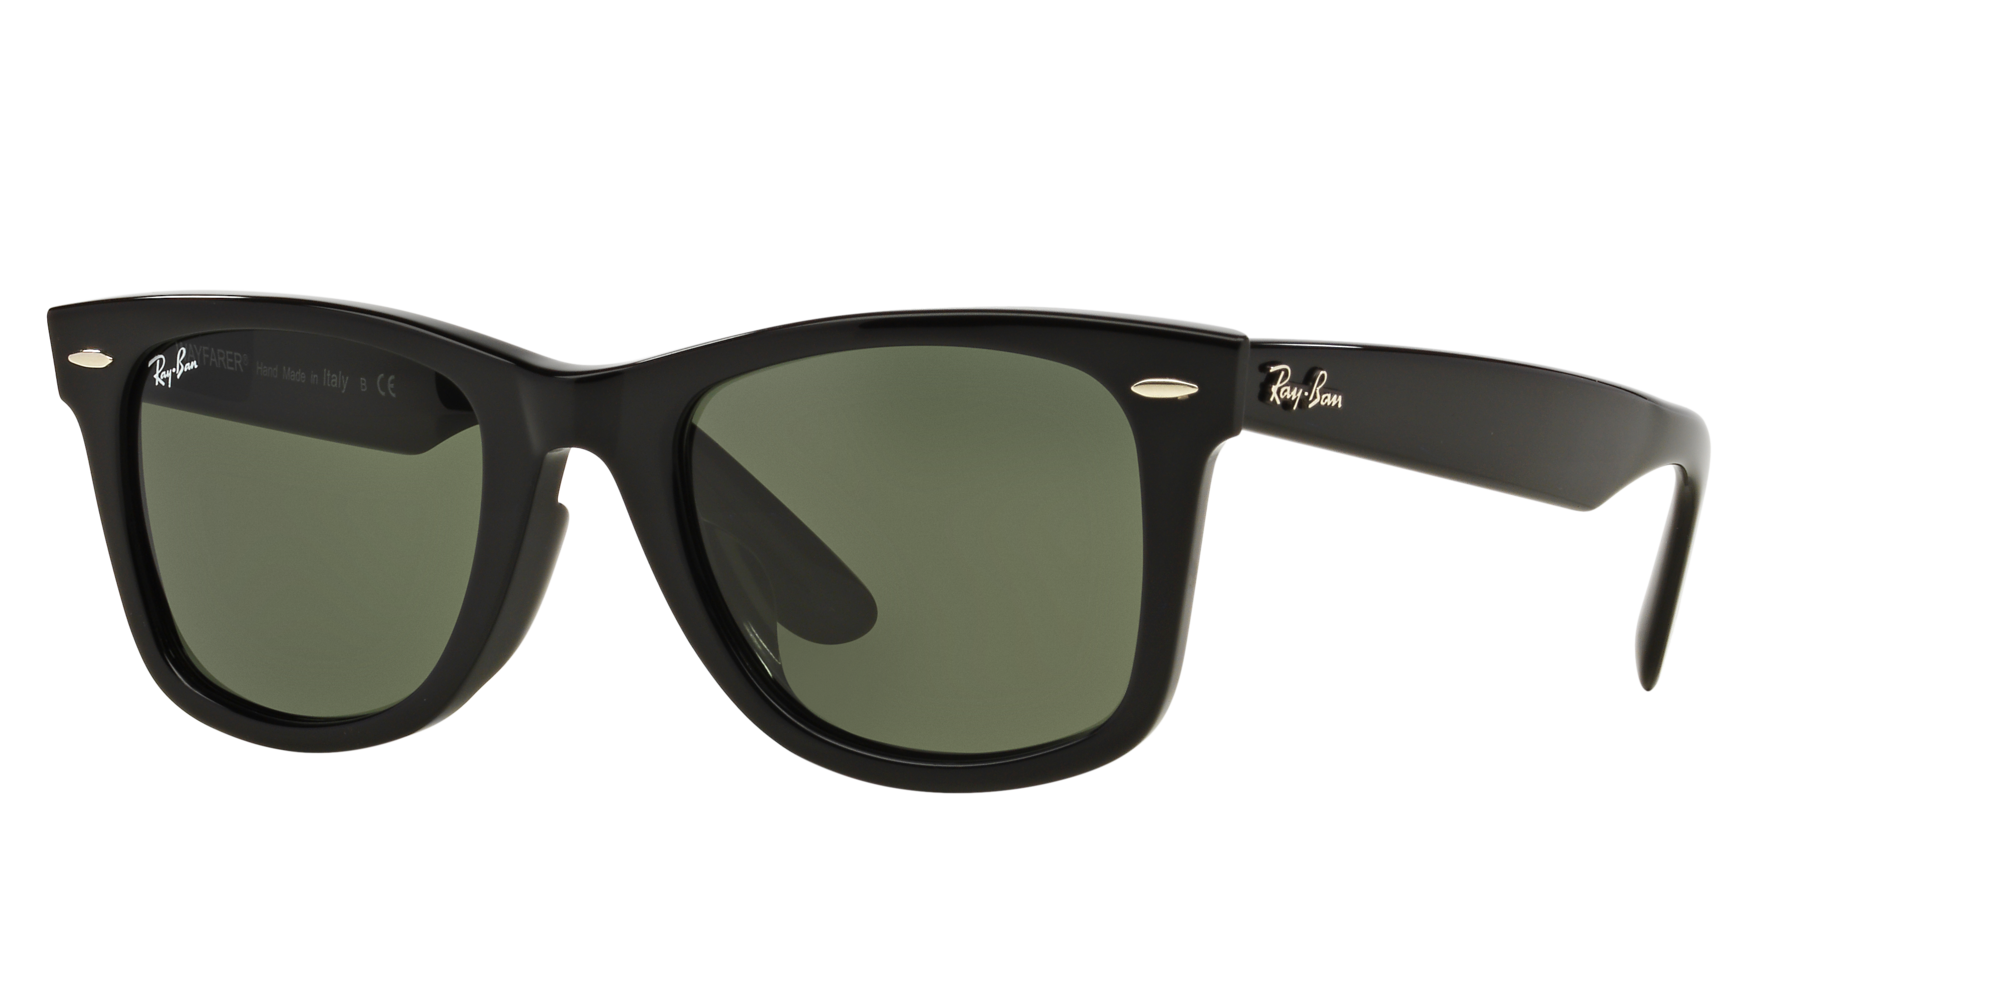 Ray-Ban Wayfarer Asian Fit - indicated by F